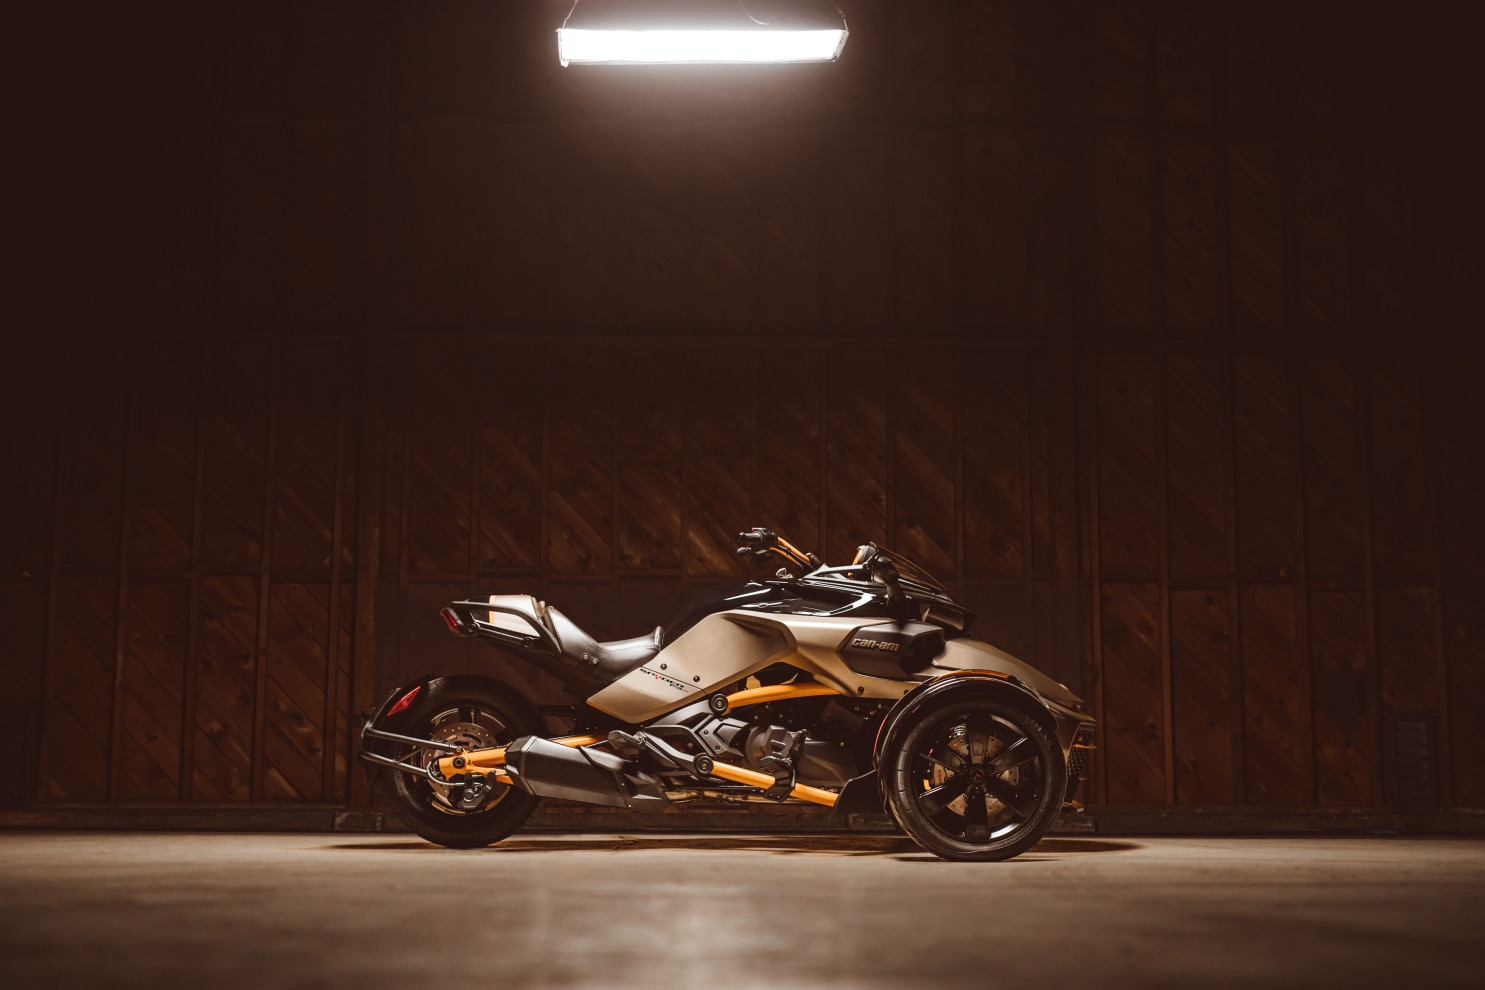 A Spyder F3 being showcased in a wooden warehouse